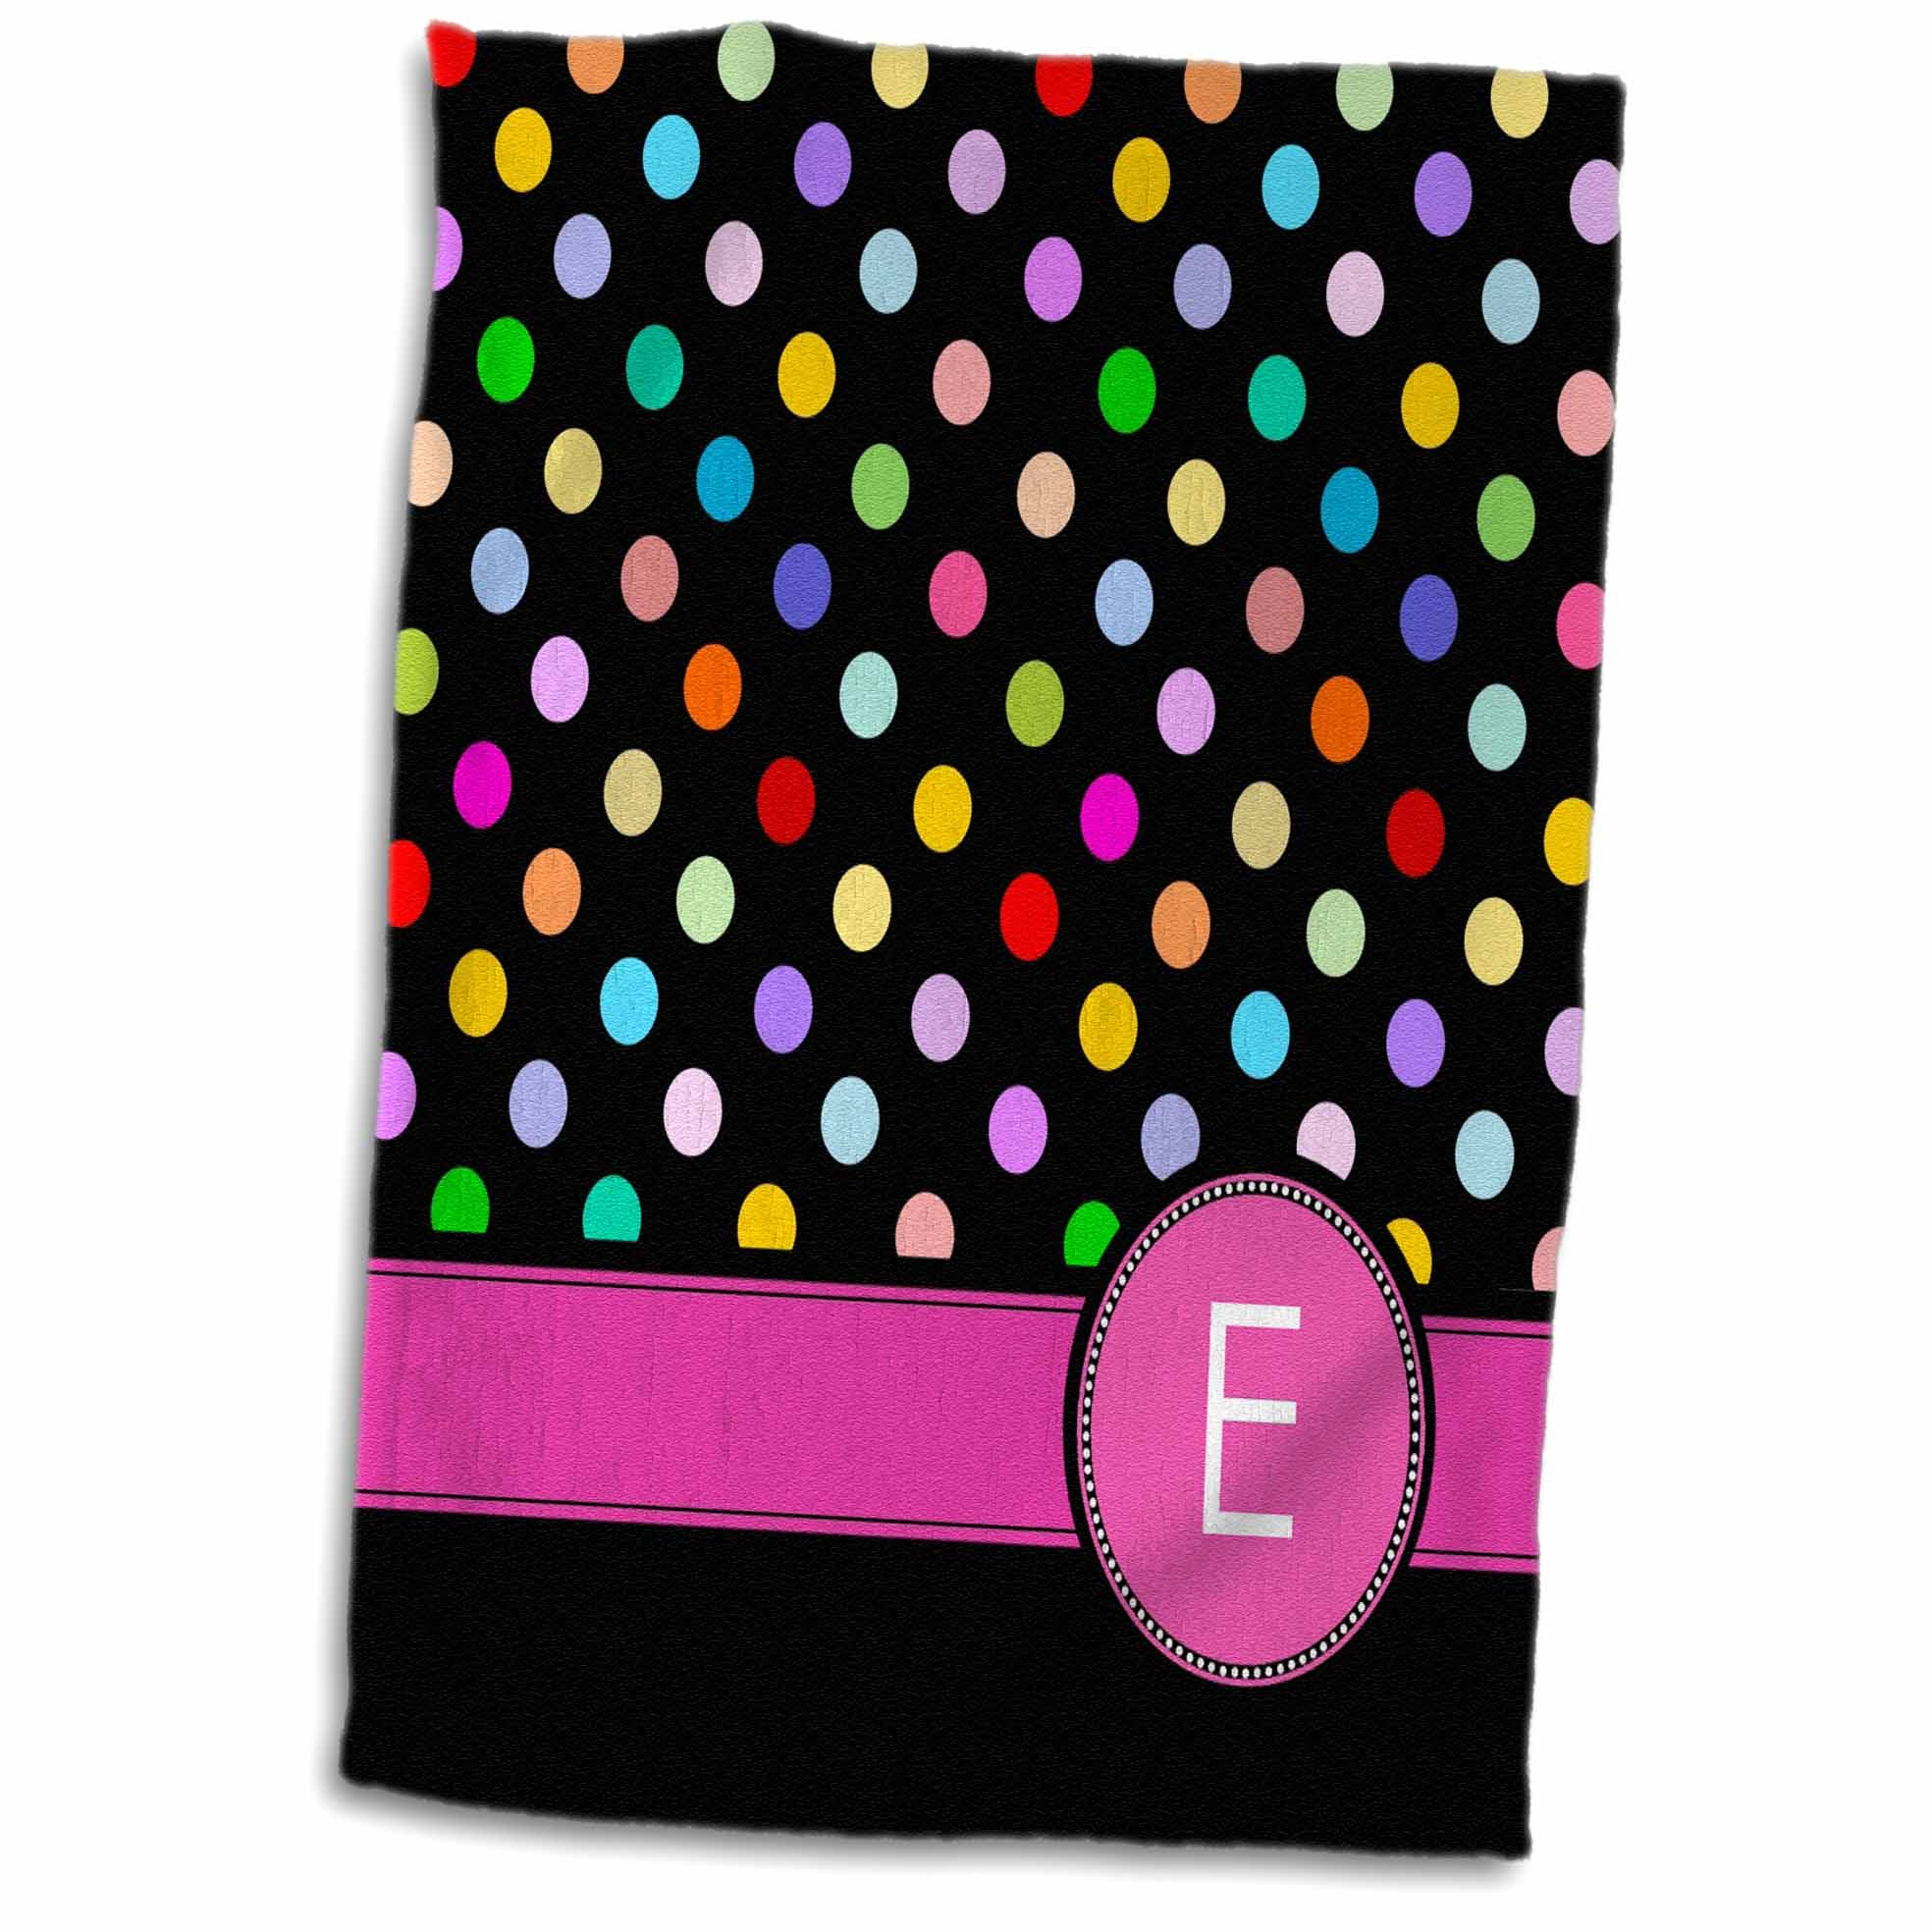 3dRose Letter E monogrammed on rainbow polka dots pattern hot pink personal initial Black girly multicolor - Towel, 15 by 22-inch